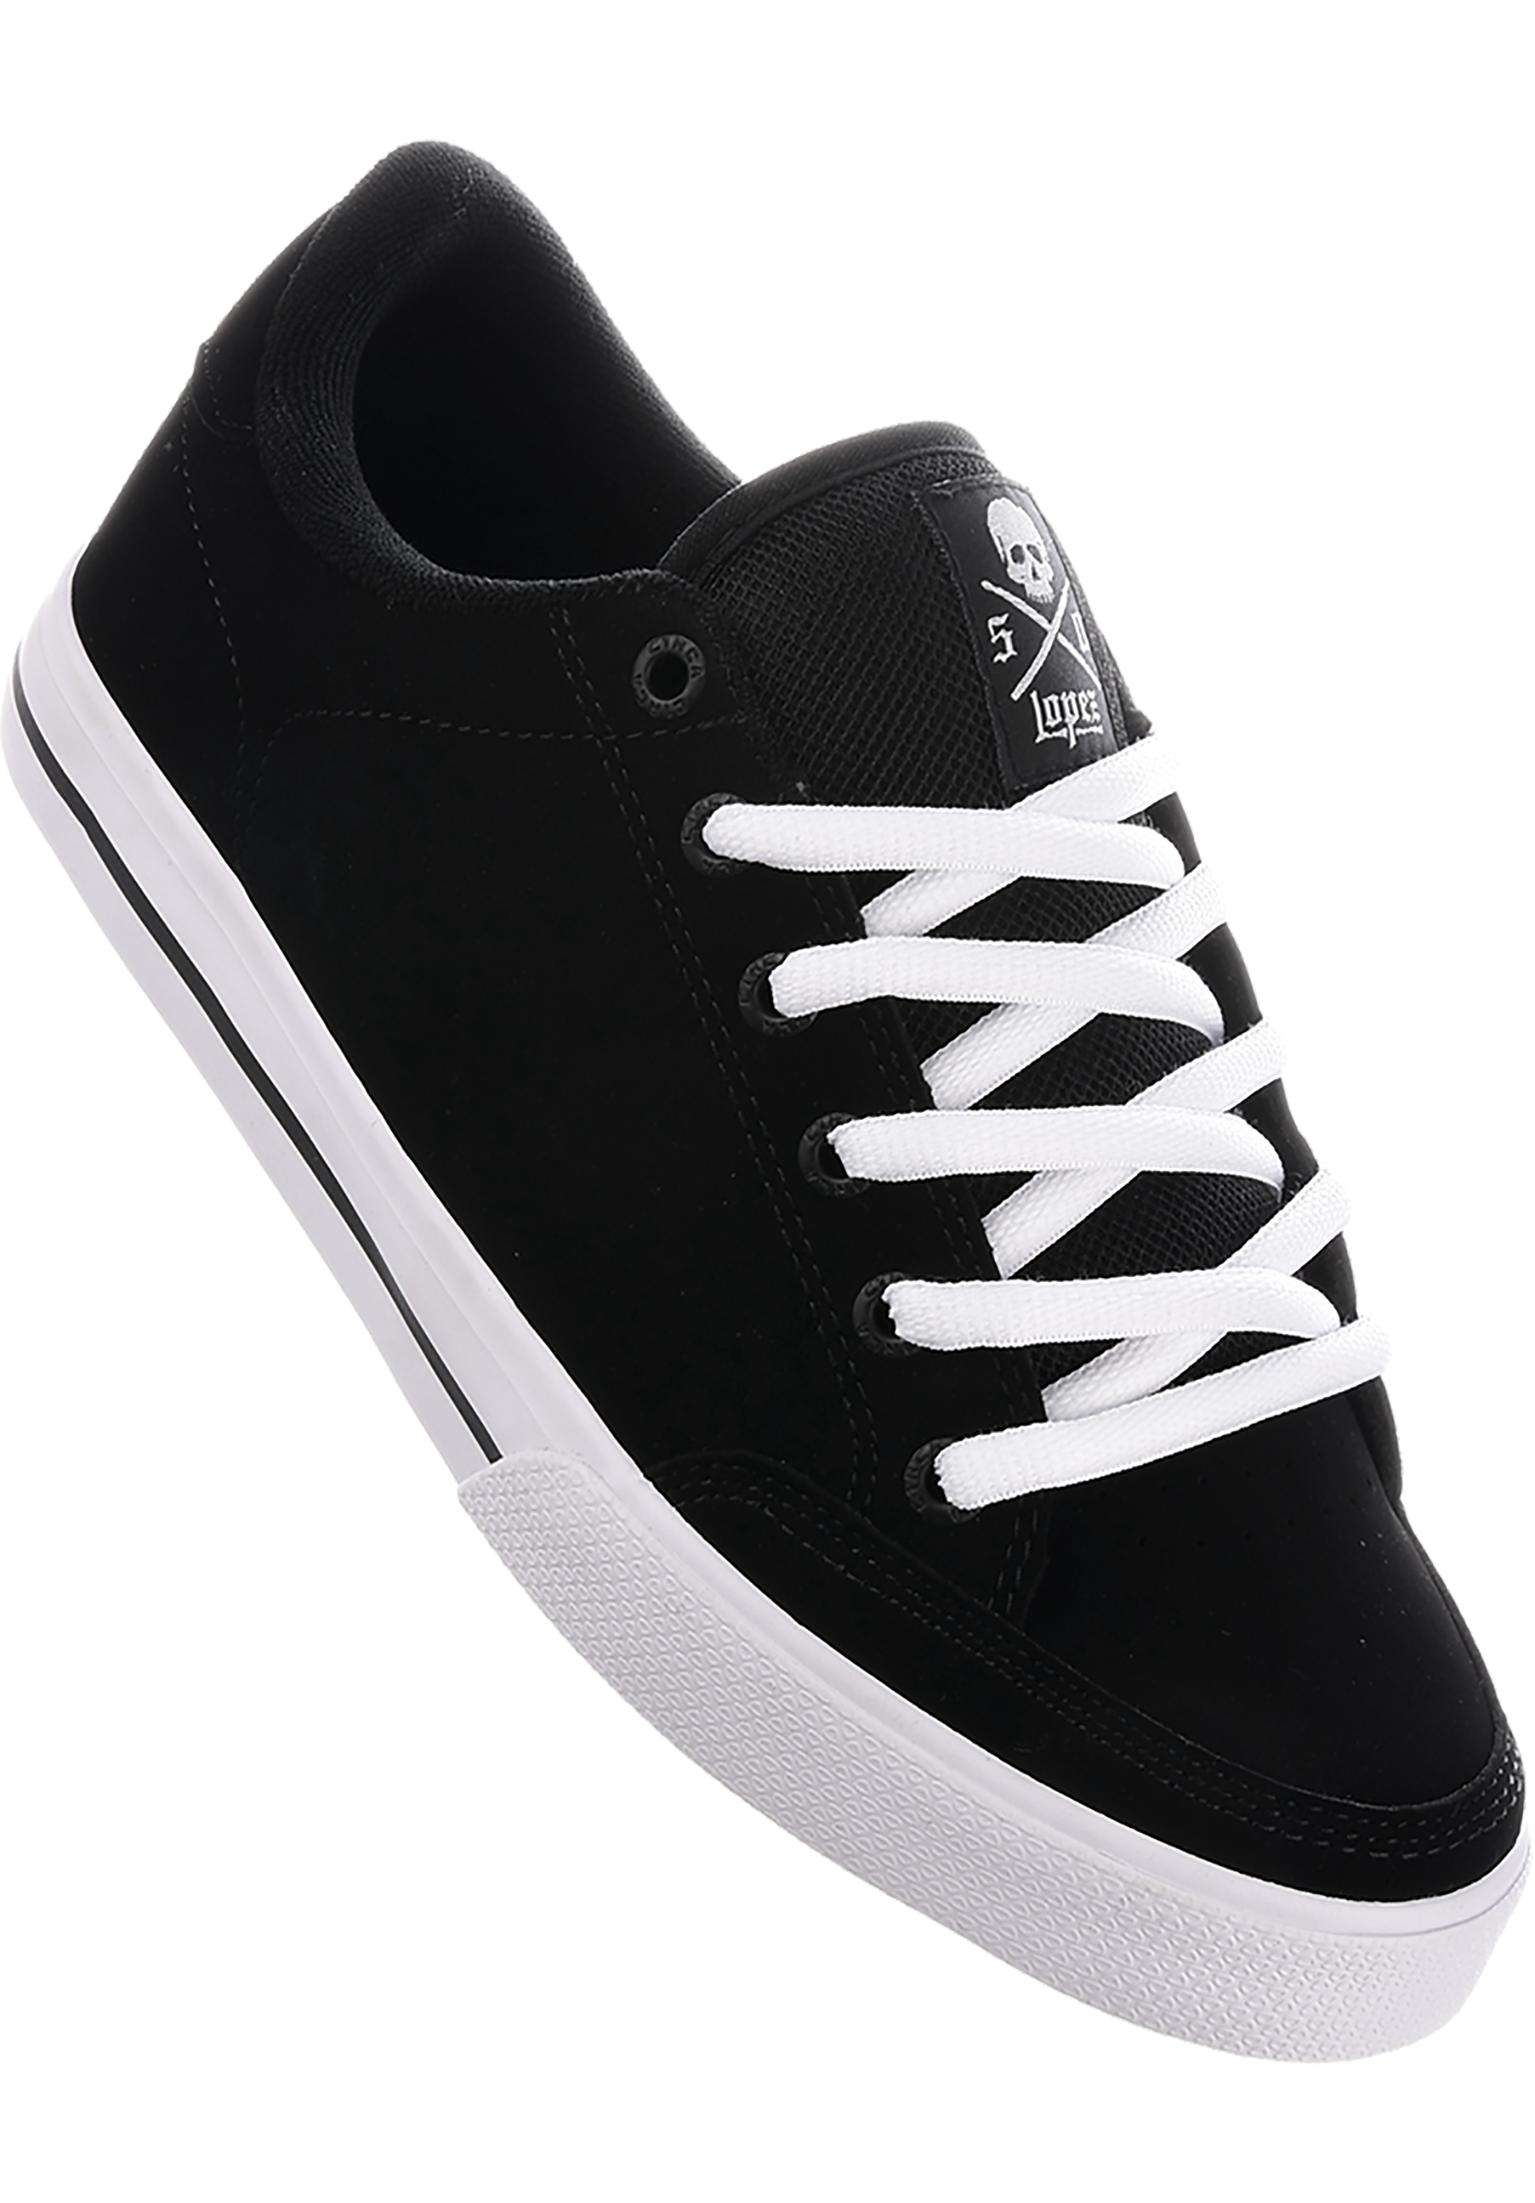 160eadef67 Lopez 50 C1RCA All Shoes in black-white for Men